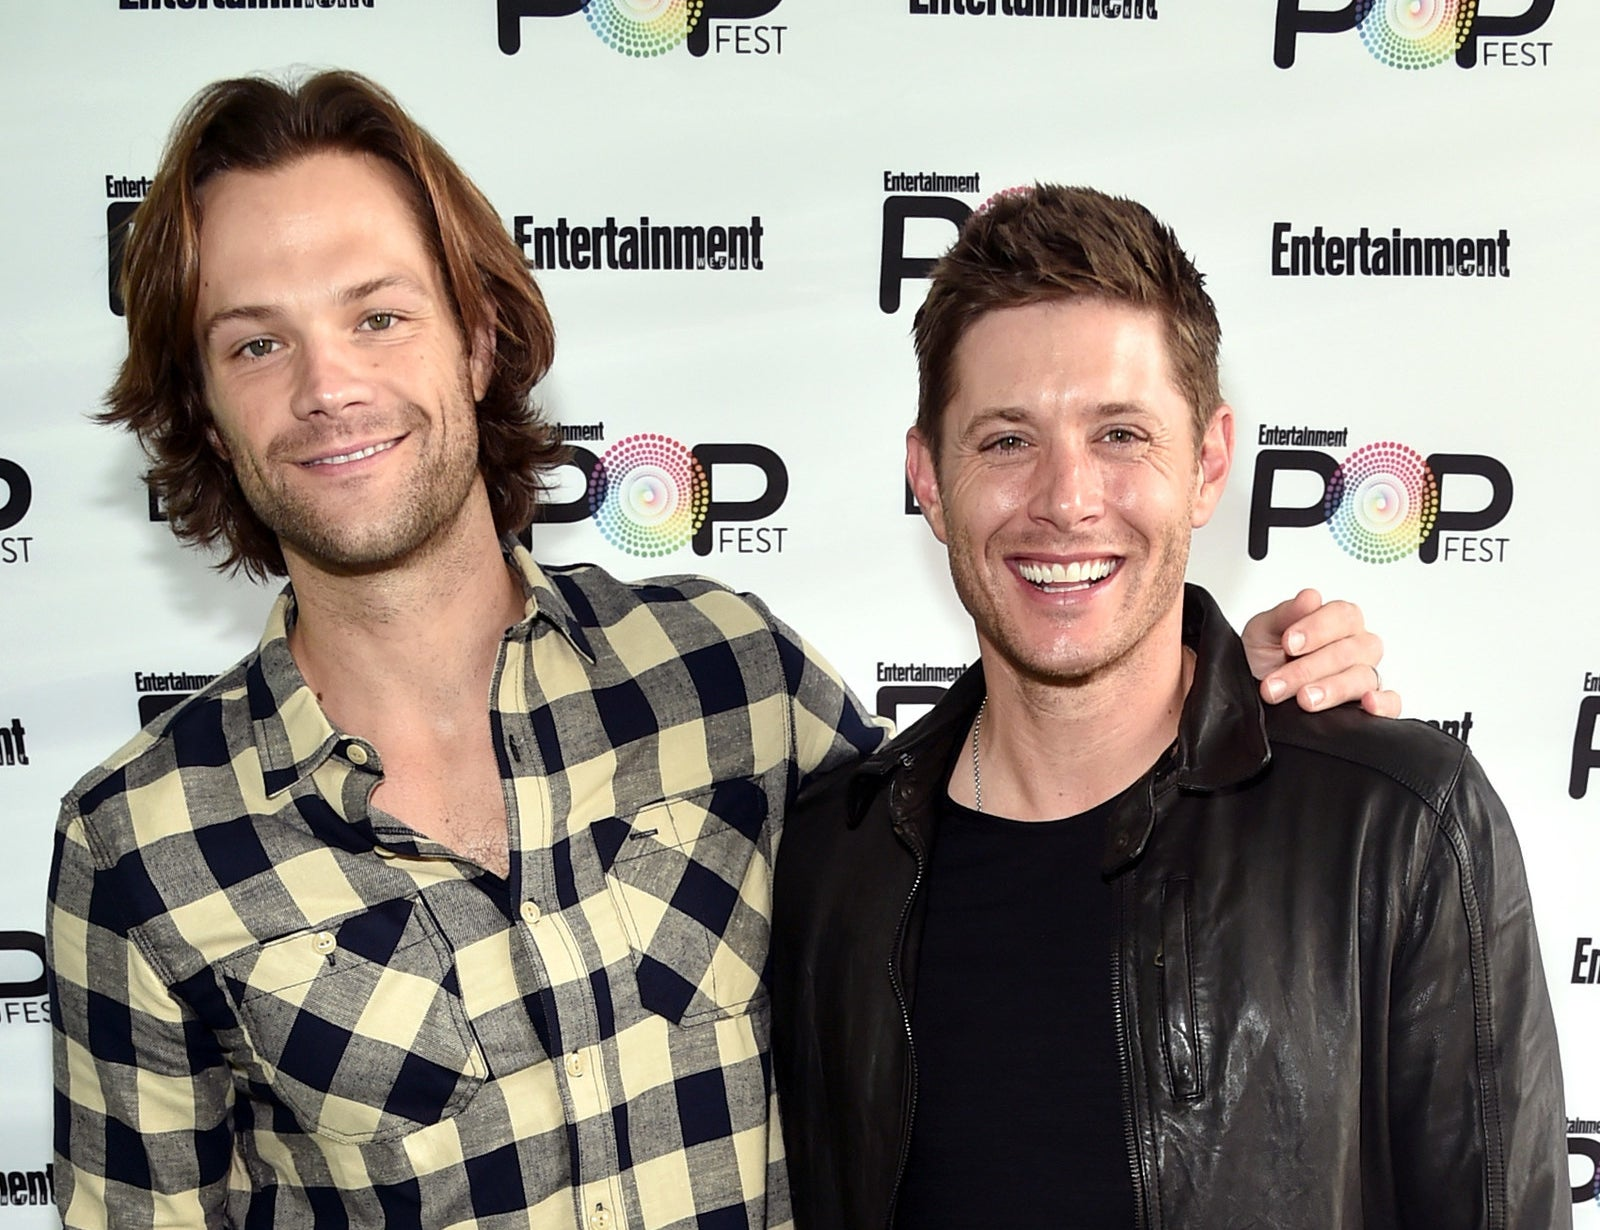 You know Jared Padalecki and Jensen Ackles, right?